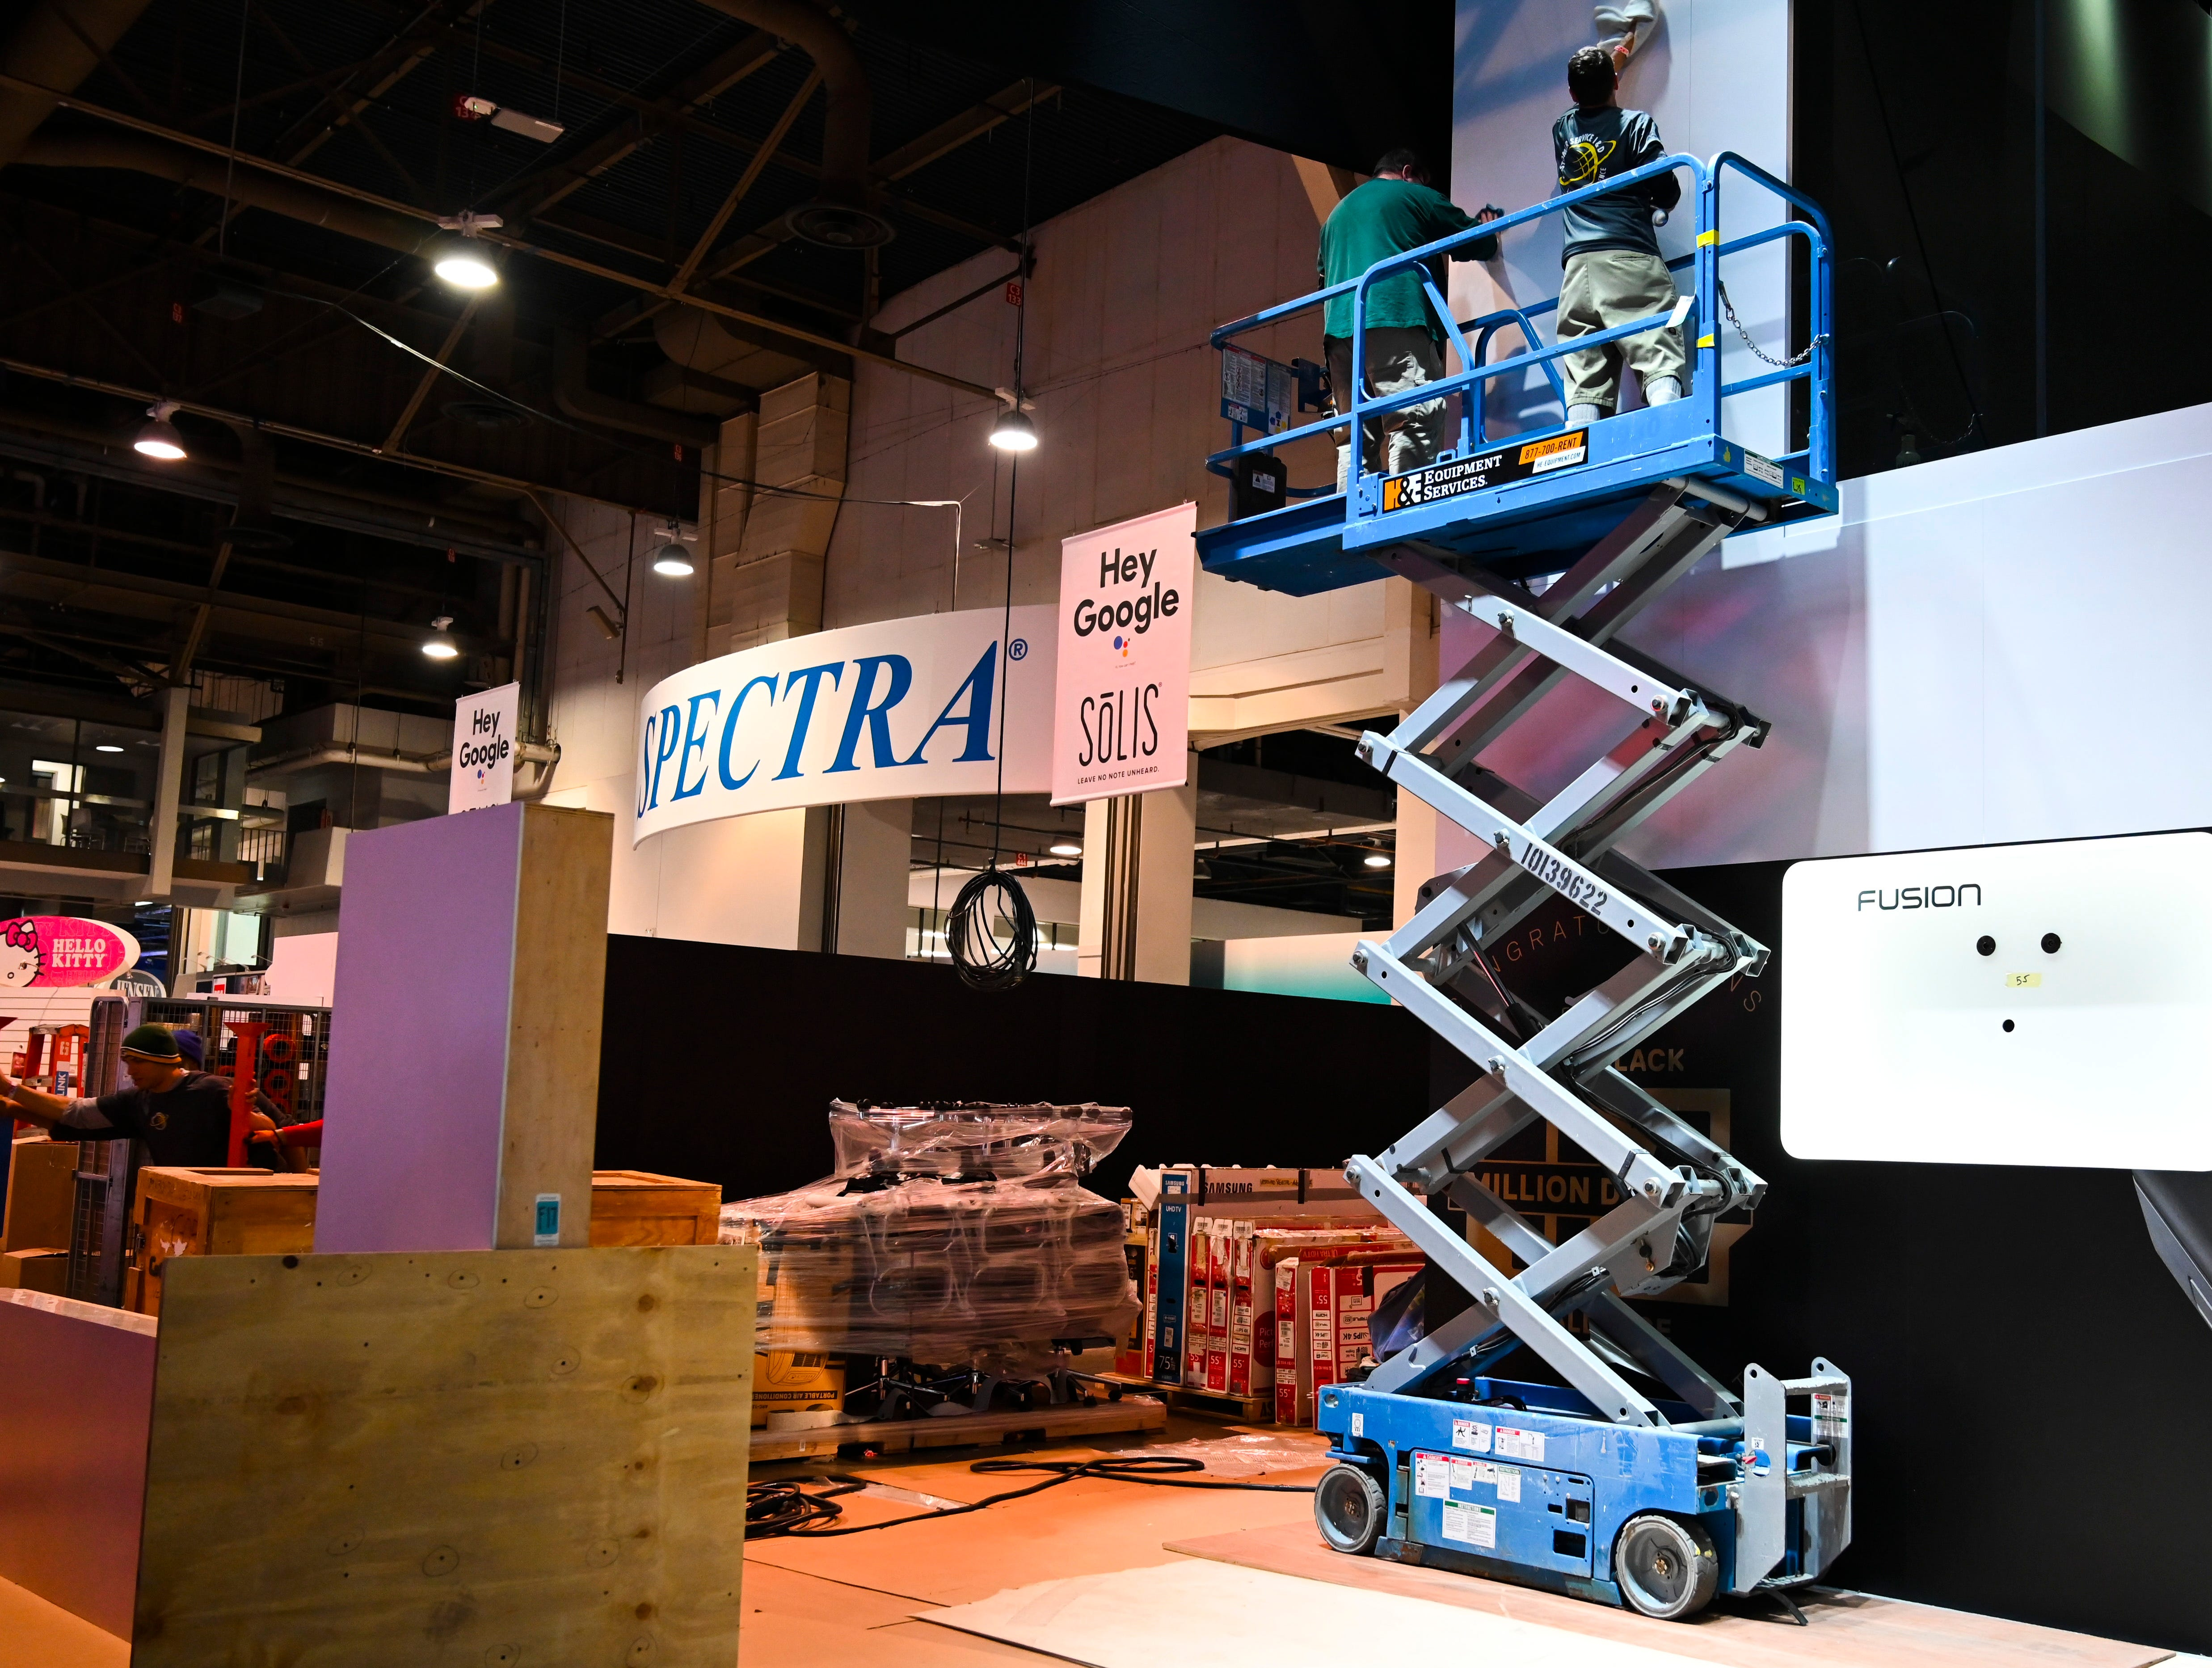 The Las Vegas Convention Central Hall was a buzz of activity as work crews finished up construction of displays in preparation for Consumer Electronics Show 2019.